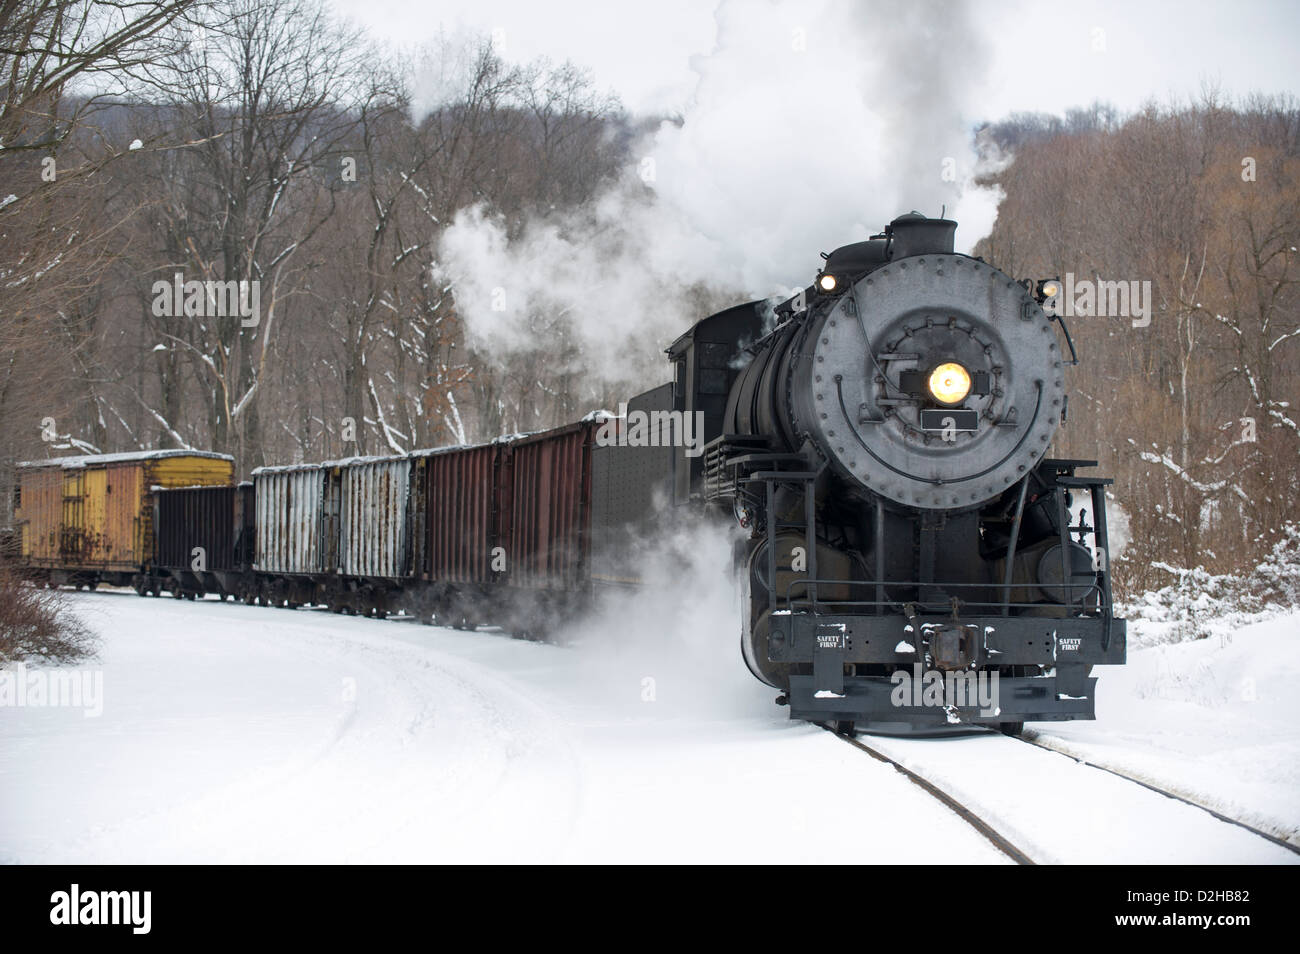 Steam locomotive pulling train rounding curve in winter snow pushing strong smoke plume, historical reenactment - Stock Image